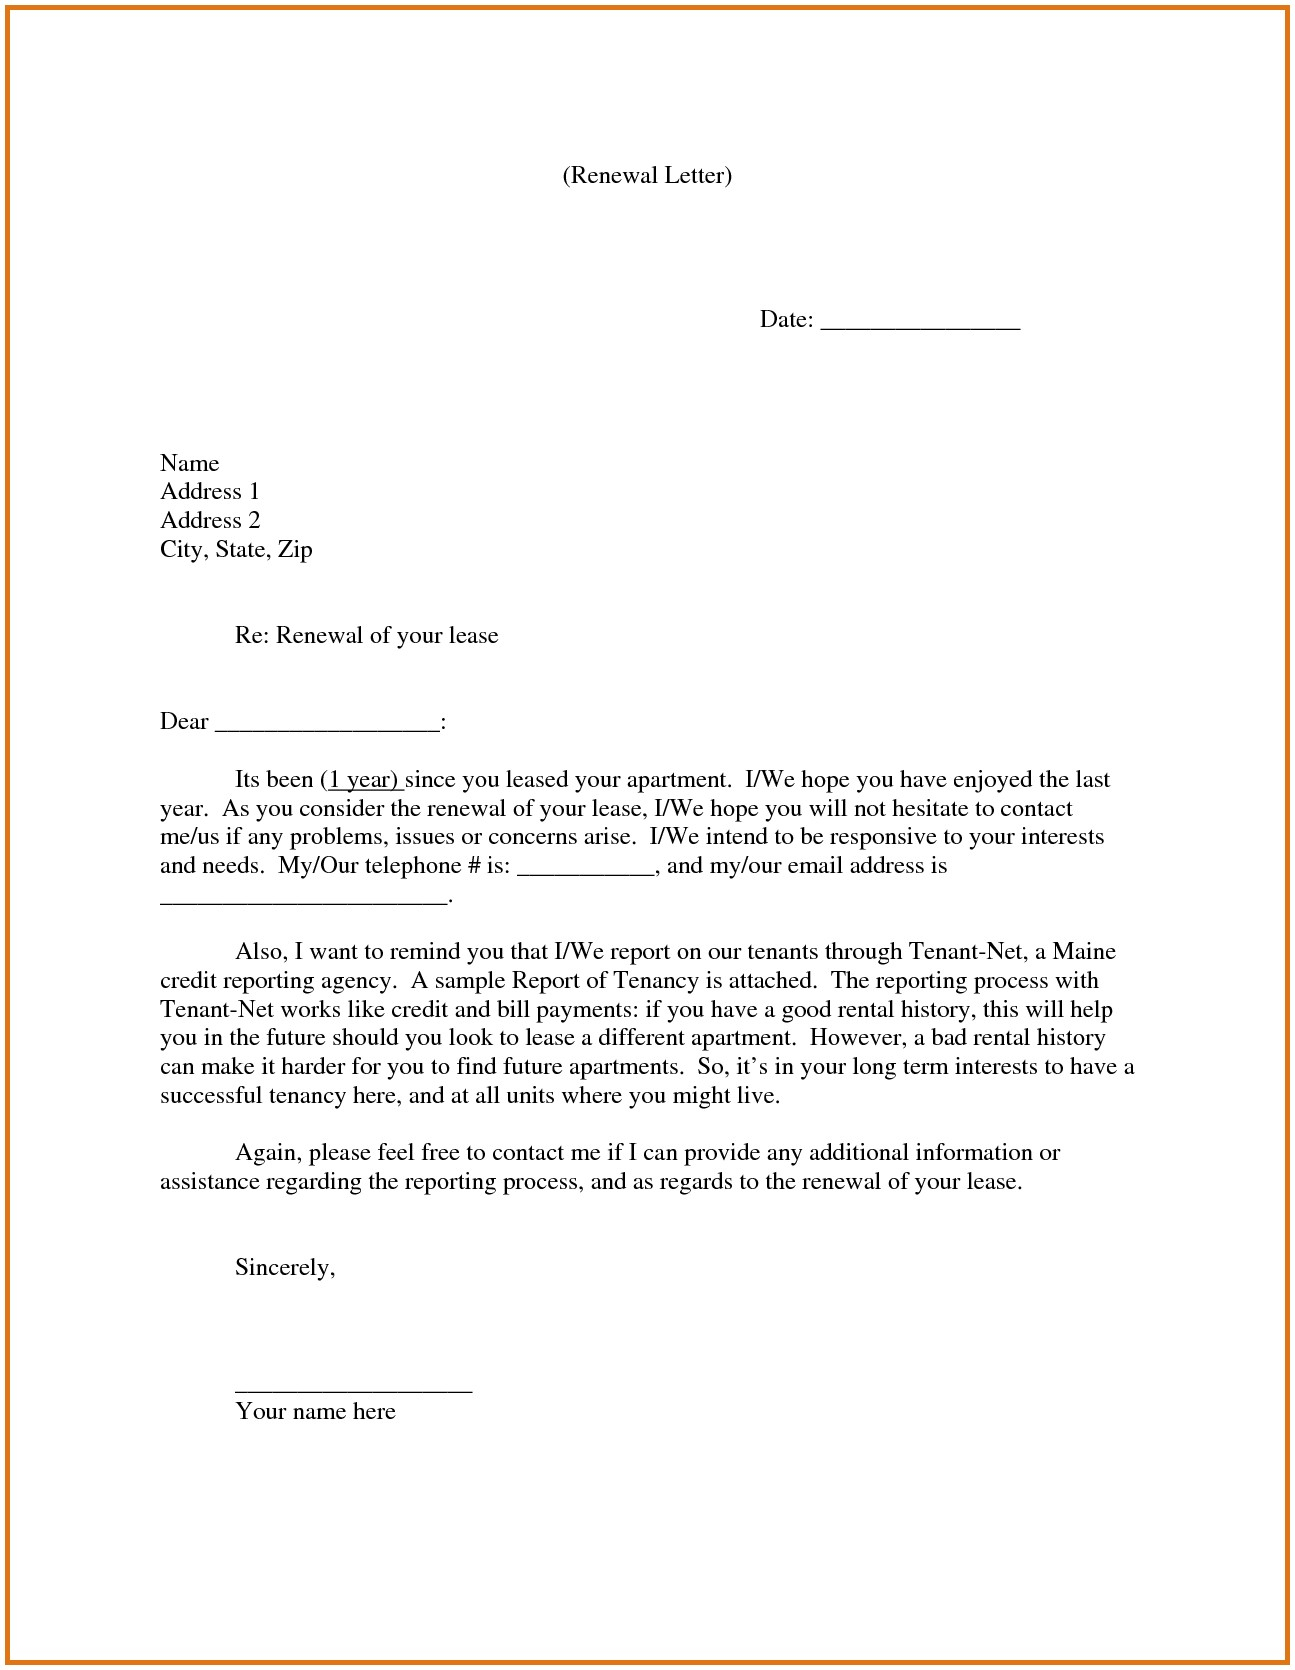 not renewing lease letter template samples letter template collection